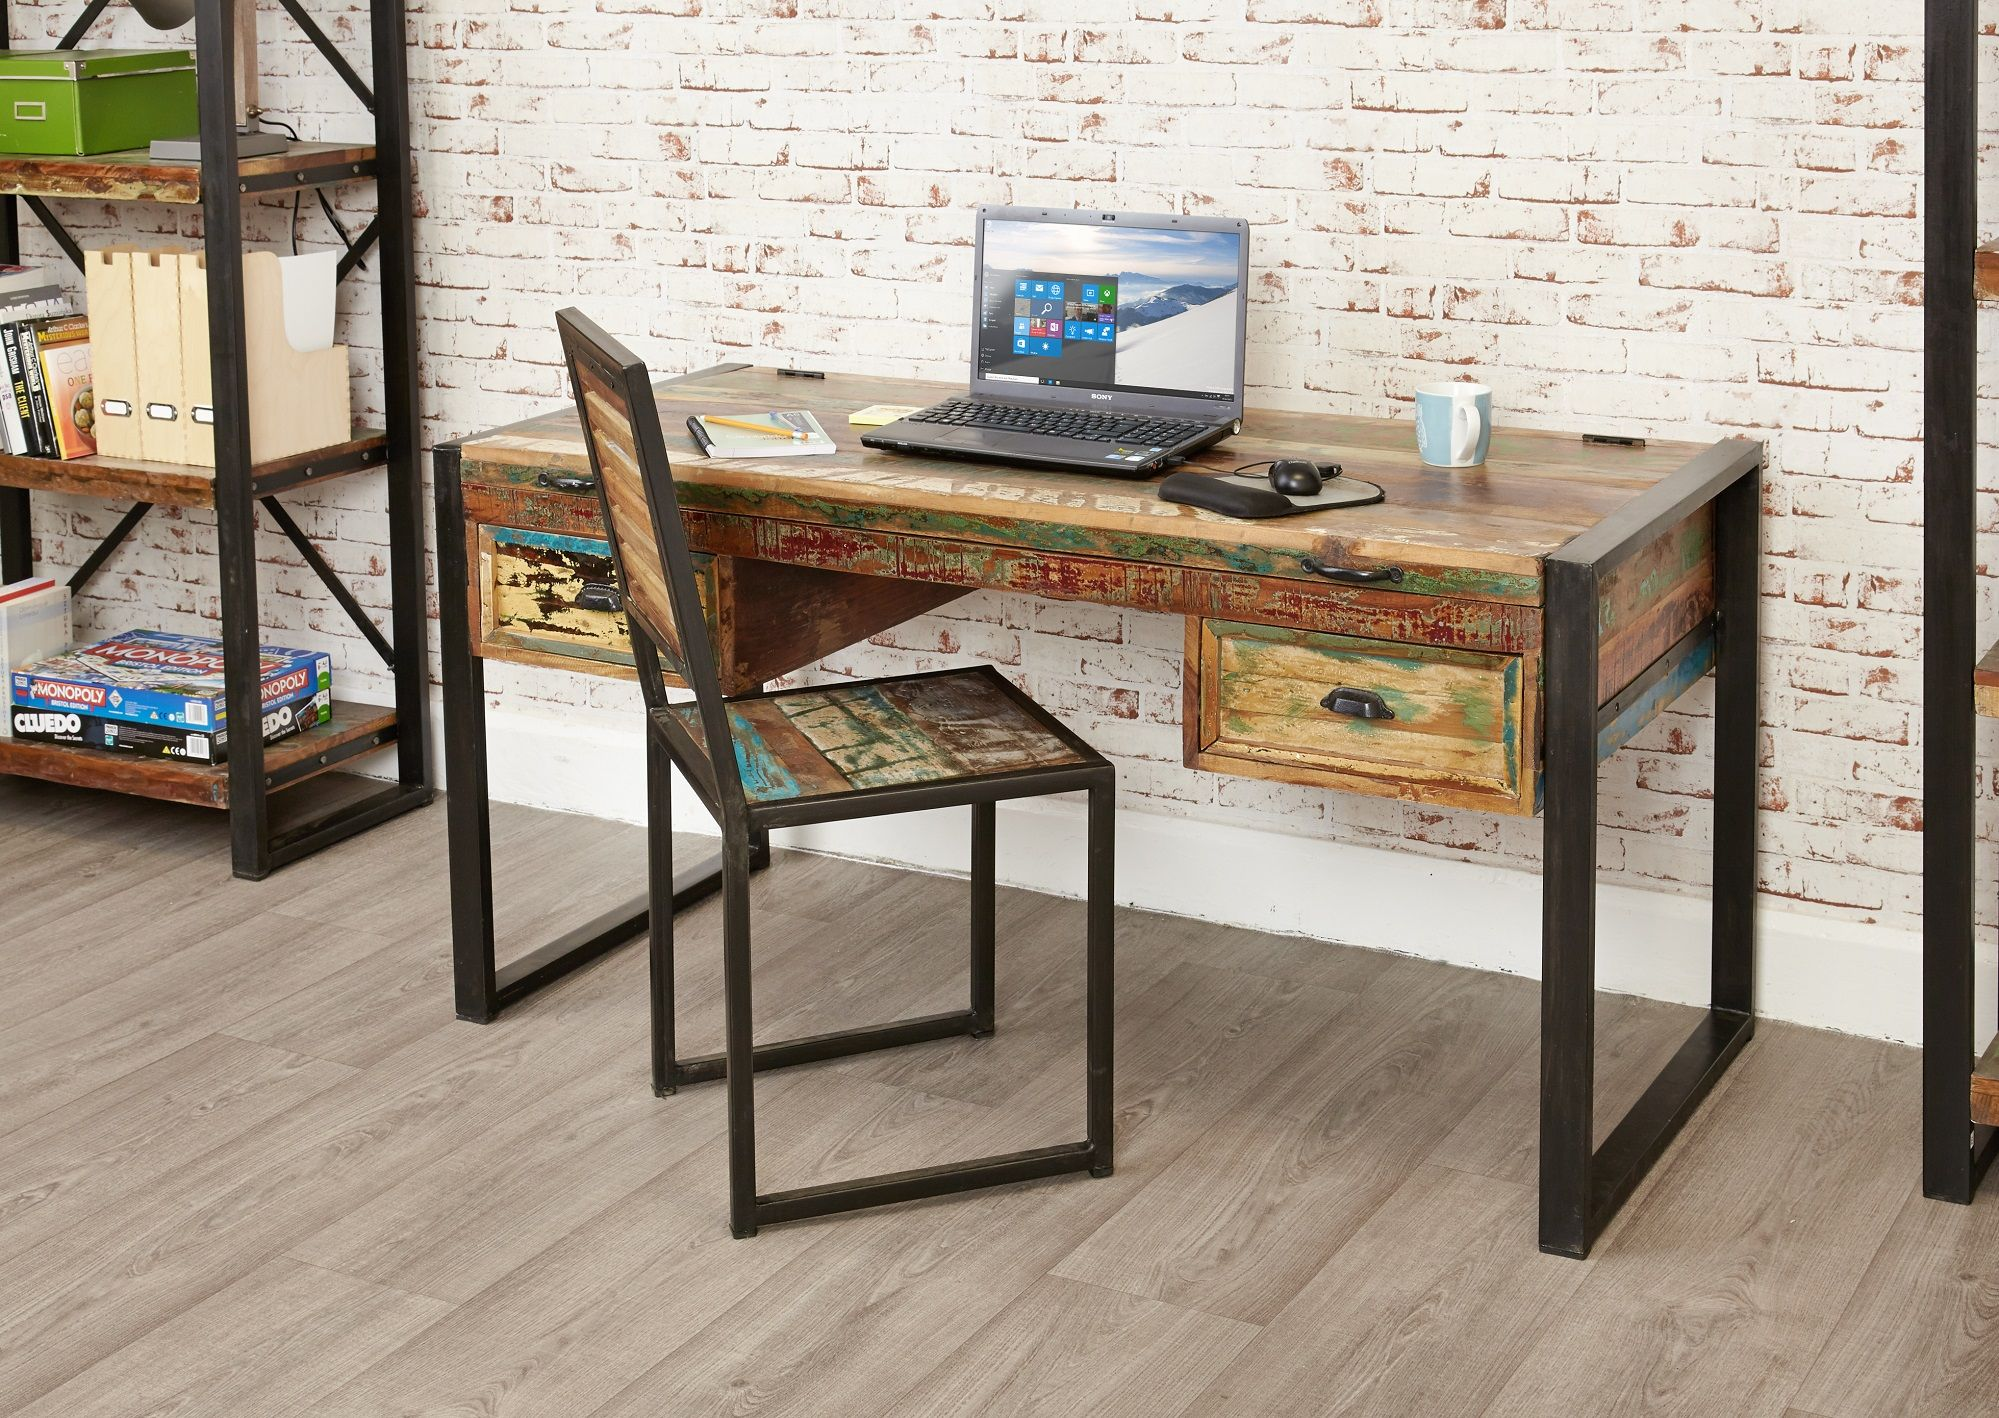 Charmant Everyone Loves A Versatile Piece Of Furniture, And Our Industrial Chic Desk  / Dressing Table